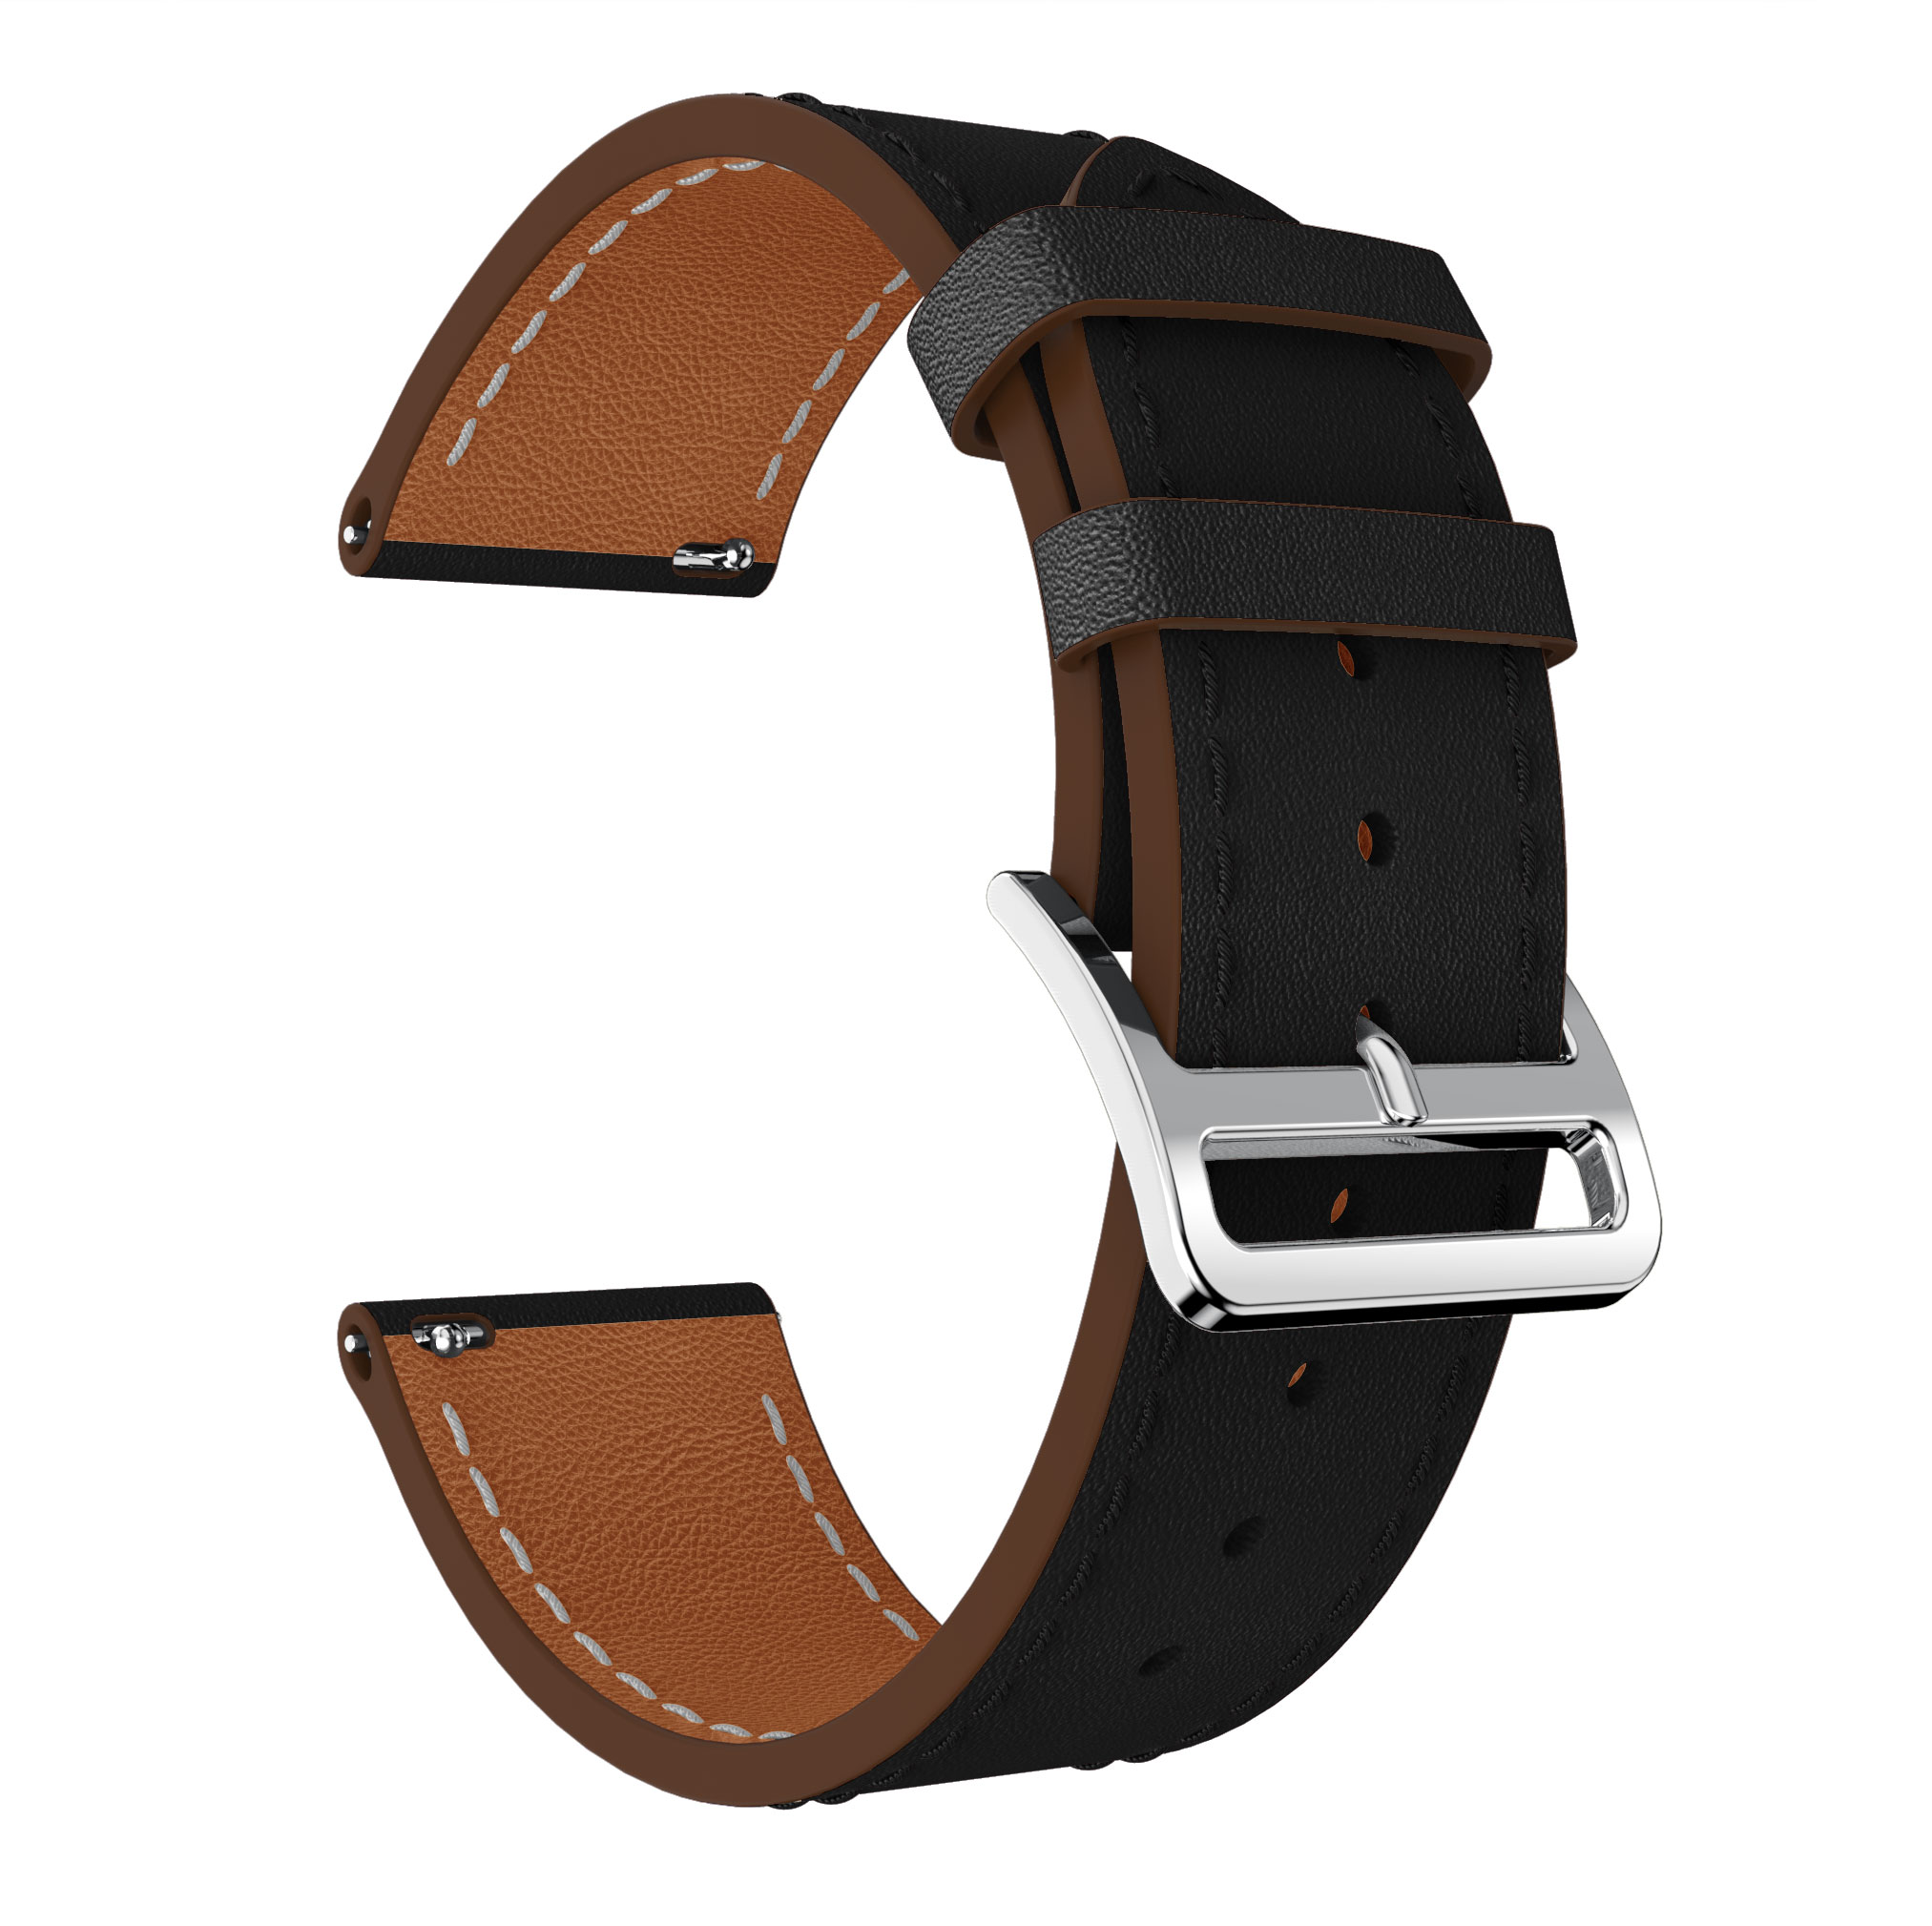 Yayuu Smart Watch Watchbands Carved Belt Genuine Leather Watch Strap Bracelet Pin Buckle Spare For Fitbit Blzae Versa 1 2 Band in Smart Accessories from Consumer Electronics